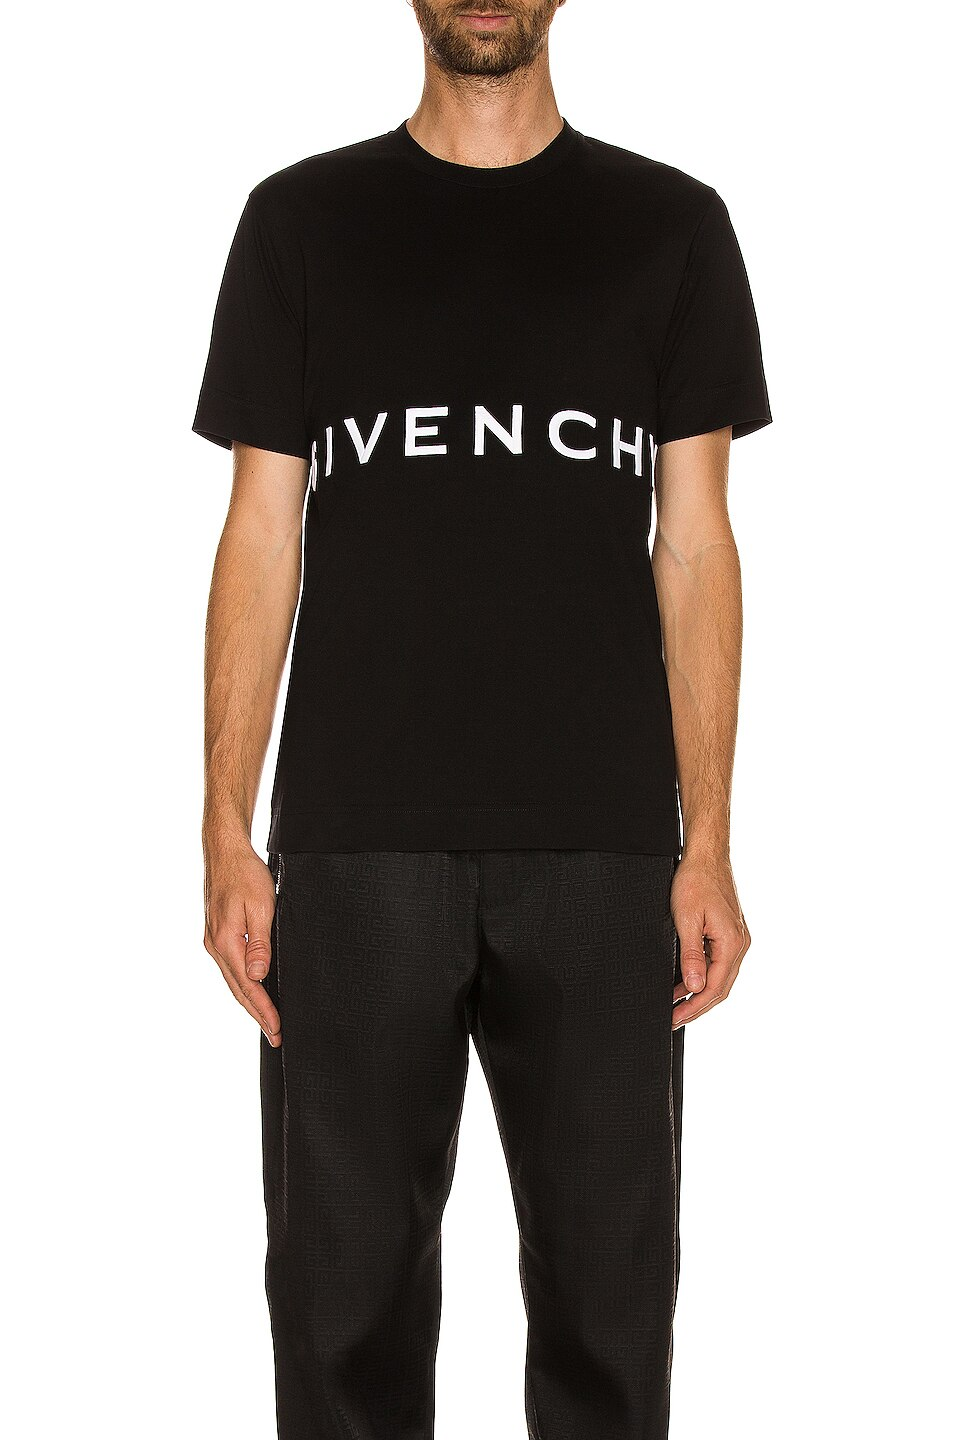 Givenchy Logo Slim Fit Tee